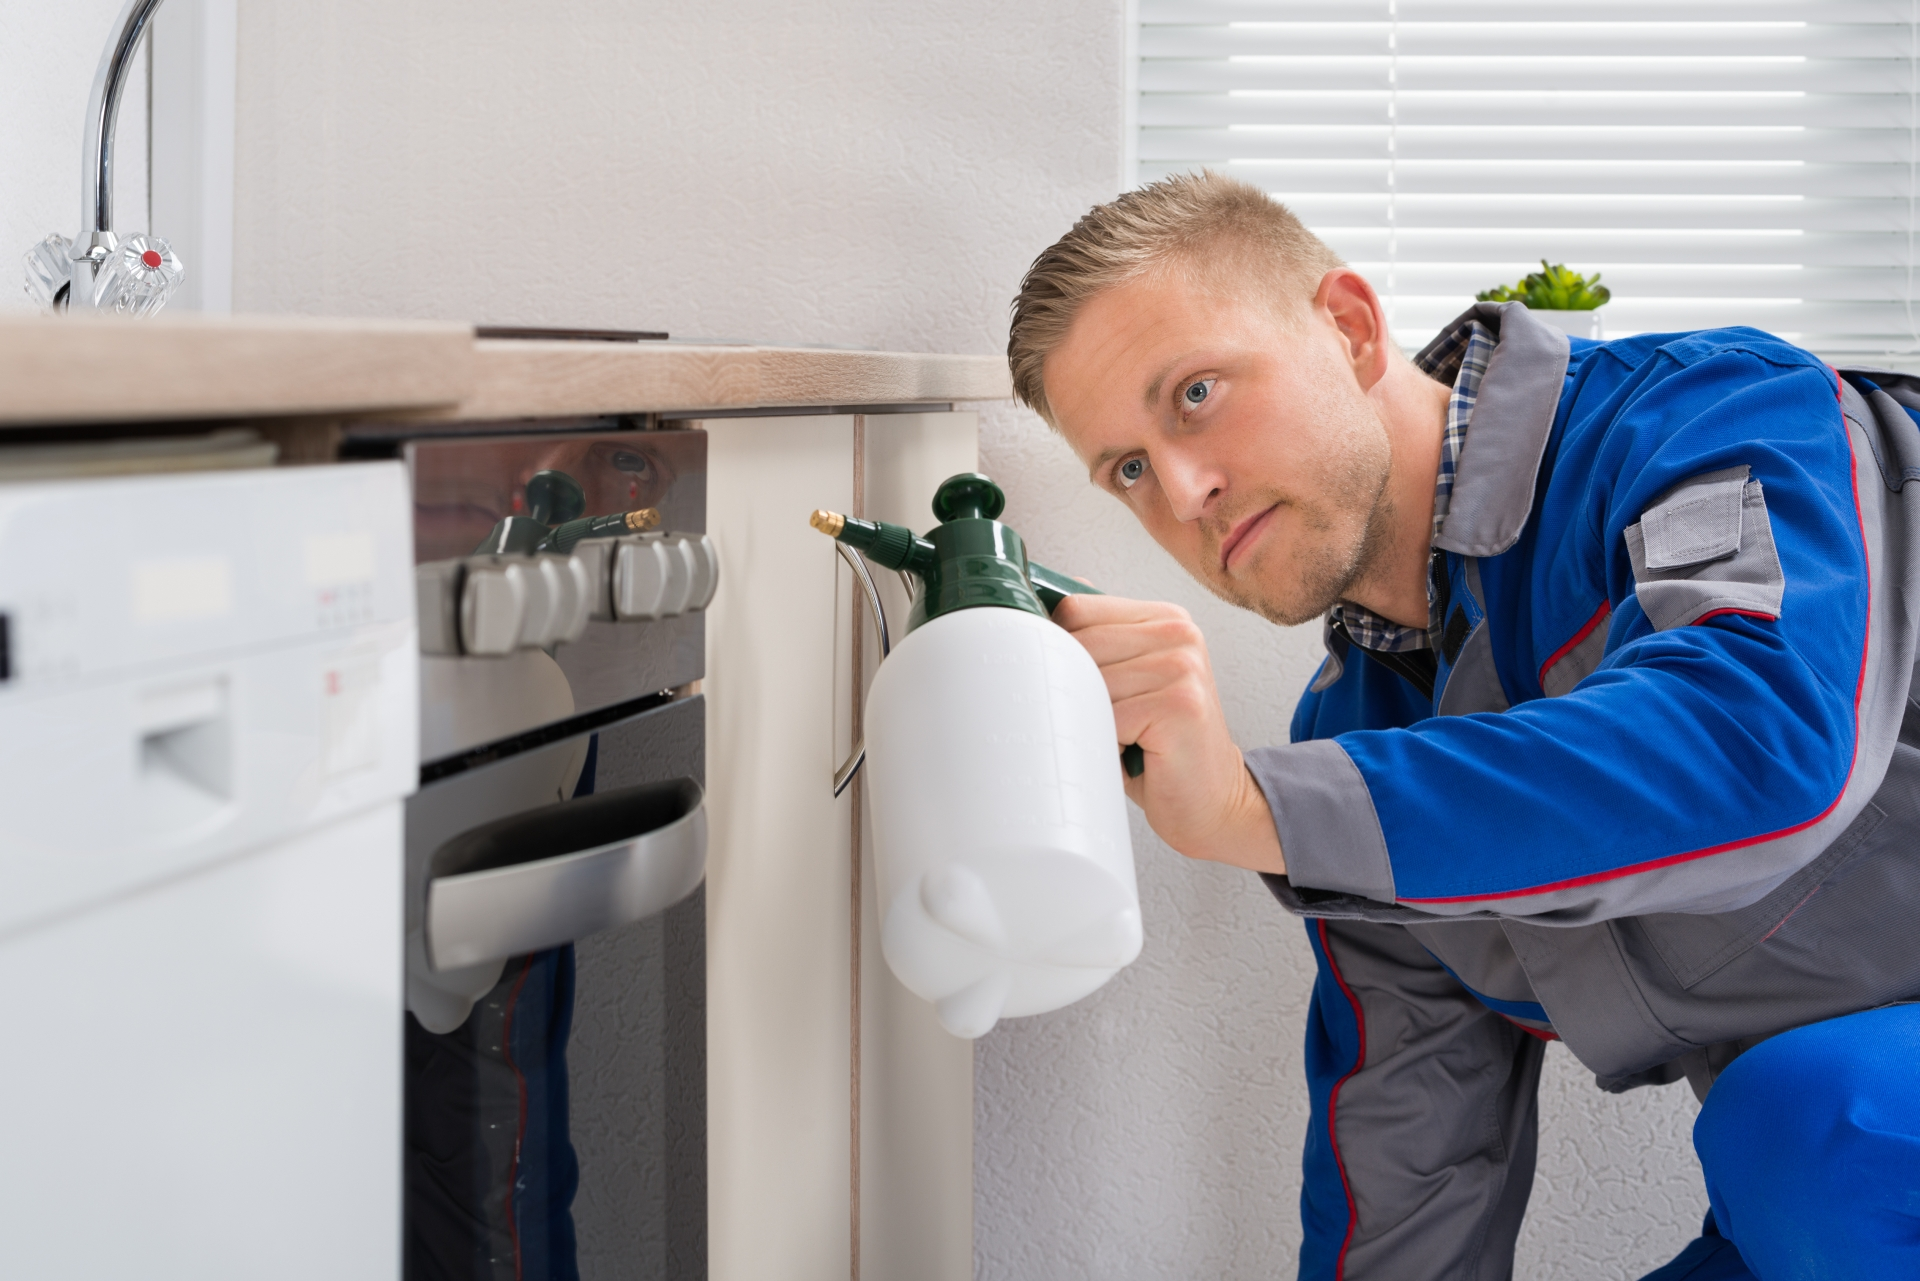 Pest Inspection, Pest Control in Ewell, Stoneleigh, KT17. Call Now 020 8166 9746